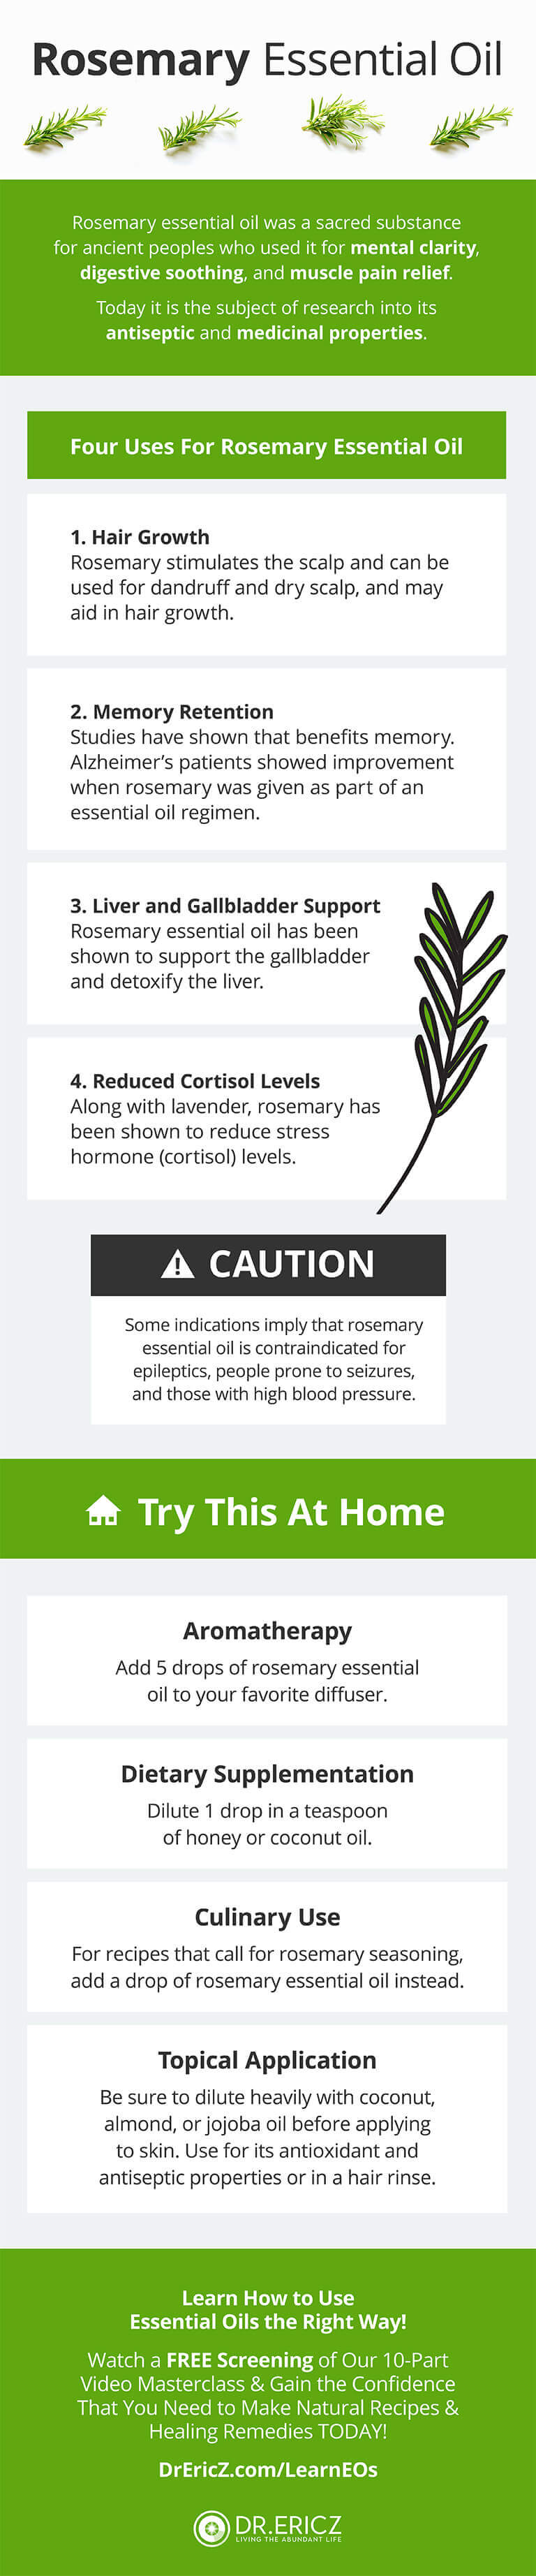 rosemary-essential-oil-infographic